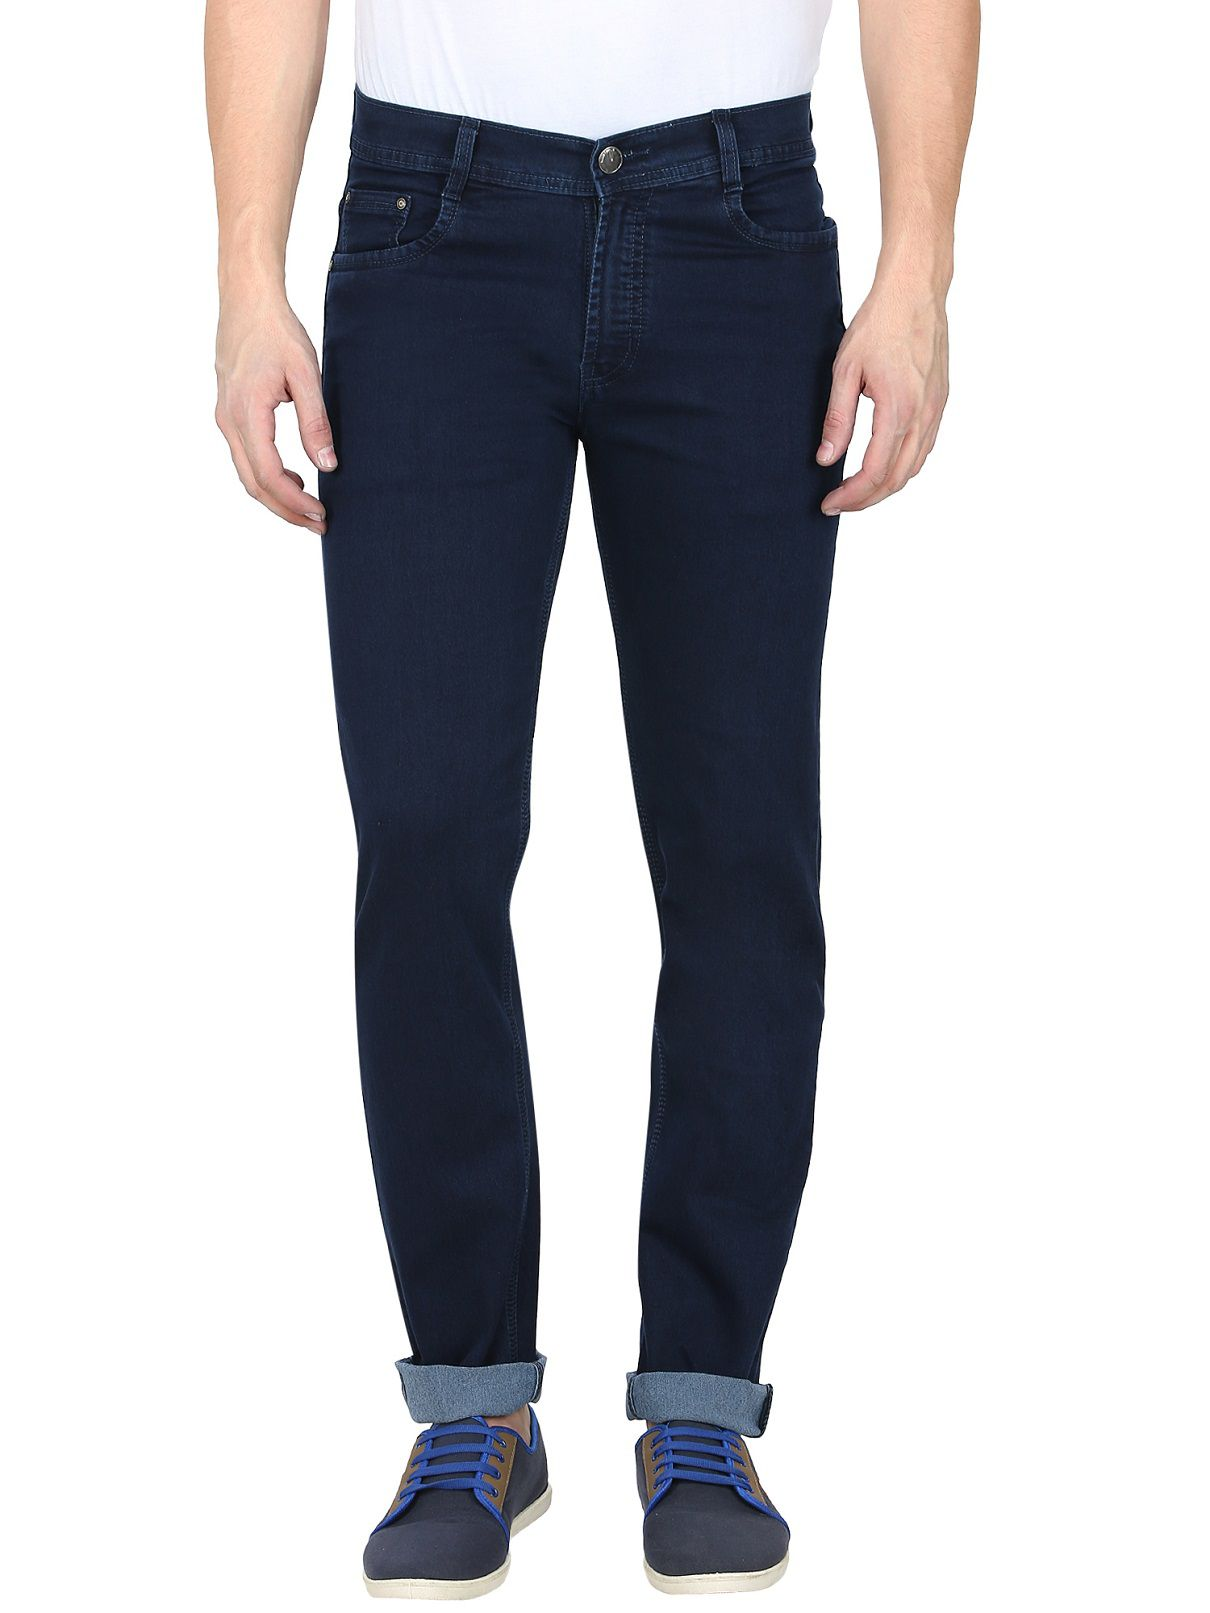 gradely Dark Blue Regular Fit Jeans